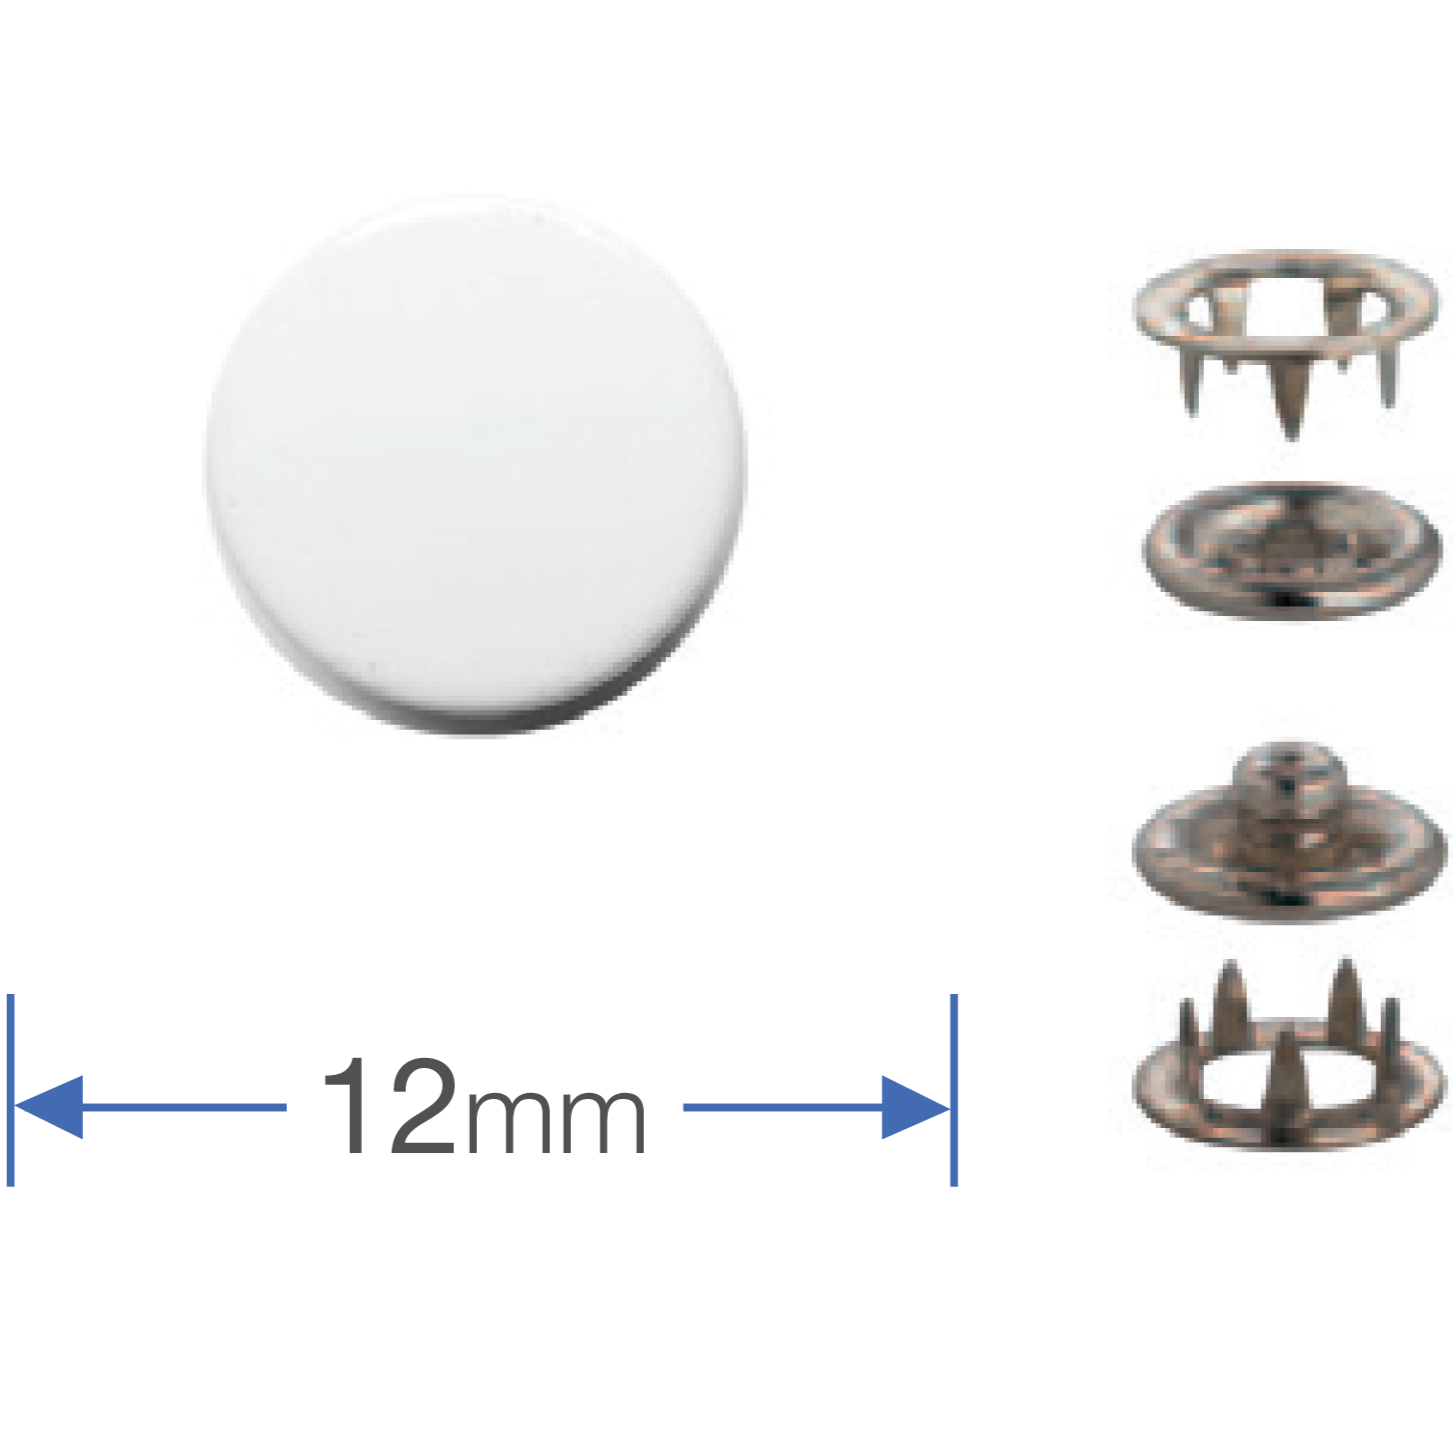 Press Studs (Non-Sew) - White 12mm: Pack of 6